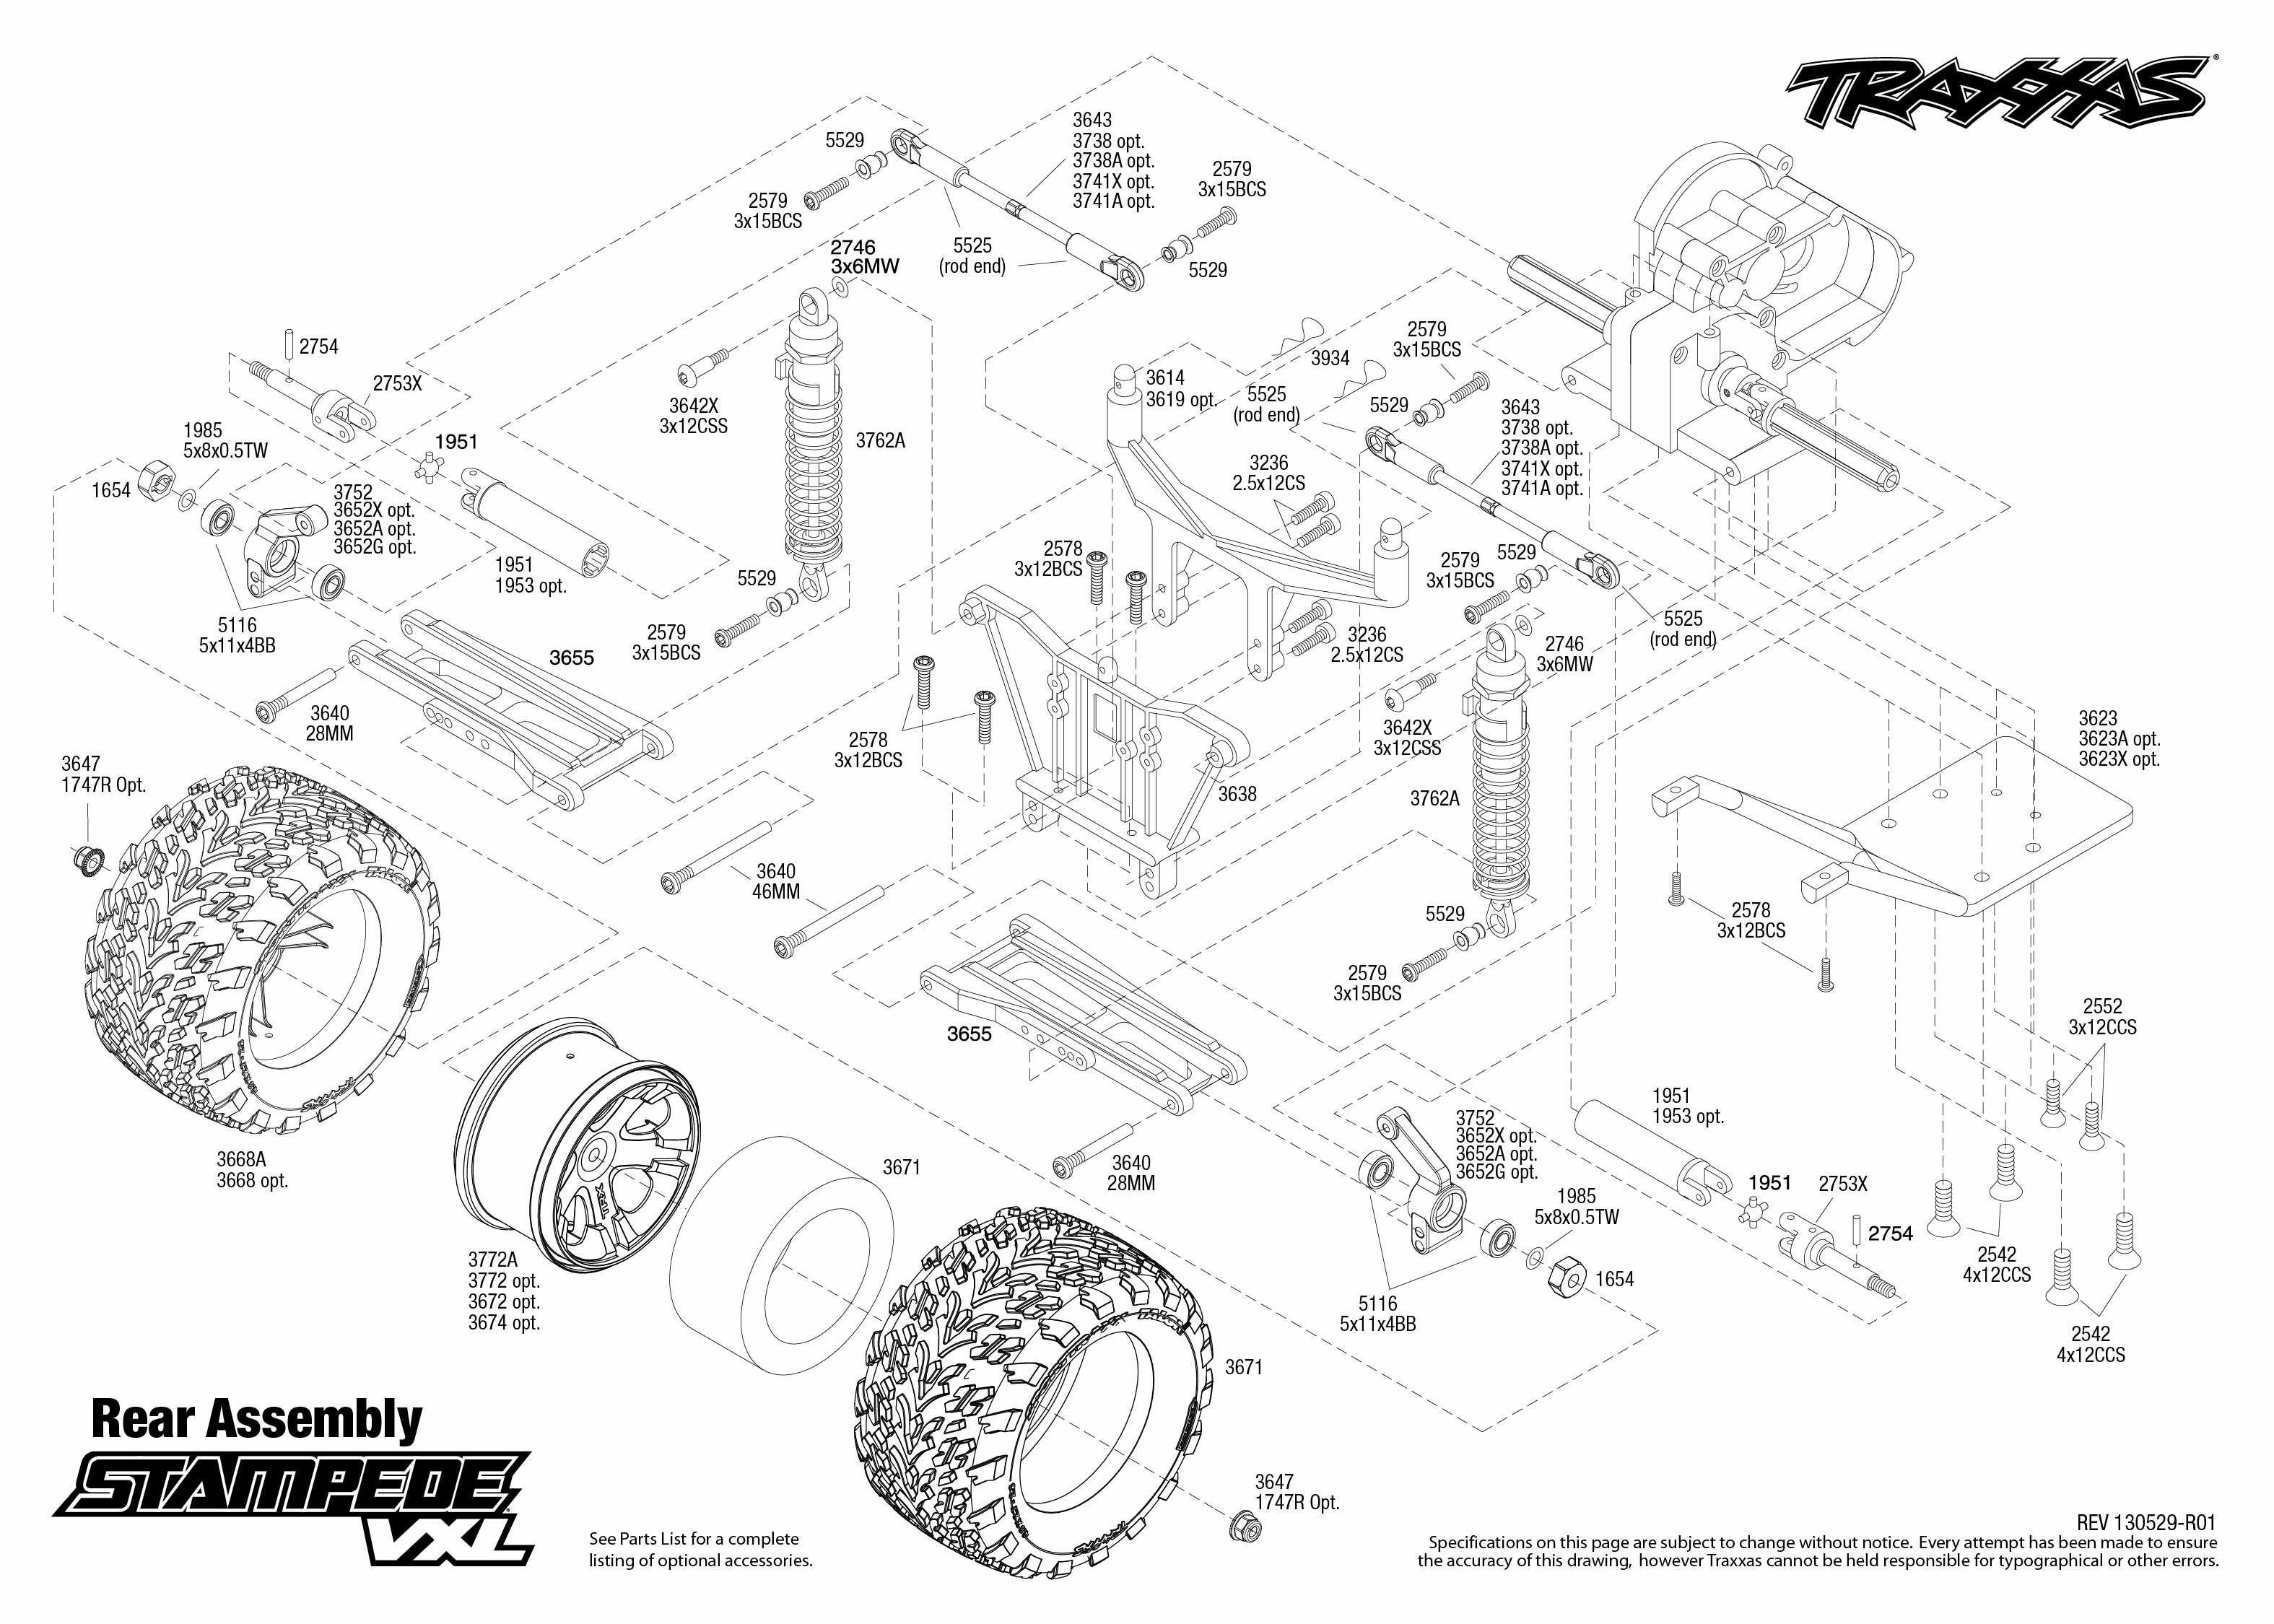 Traxxas Stampede Xl 5 Parts Diagram Everything About Wiring Index Of Tiedostot 4x4 Vxl 1 10 Scale 2wd Monster Truck 3607l Rh Gasscooters Net Electric Paddle Tires